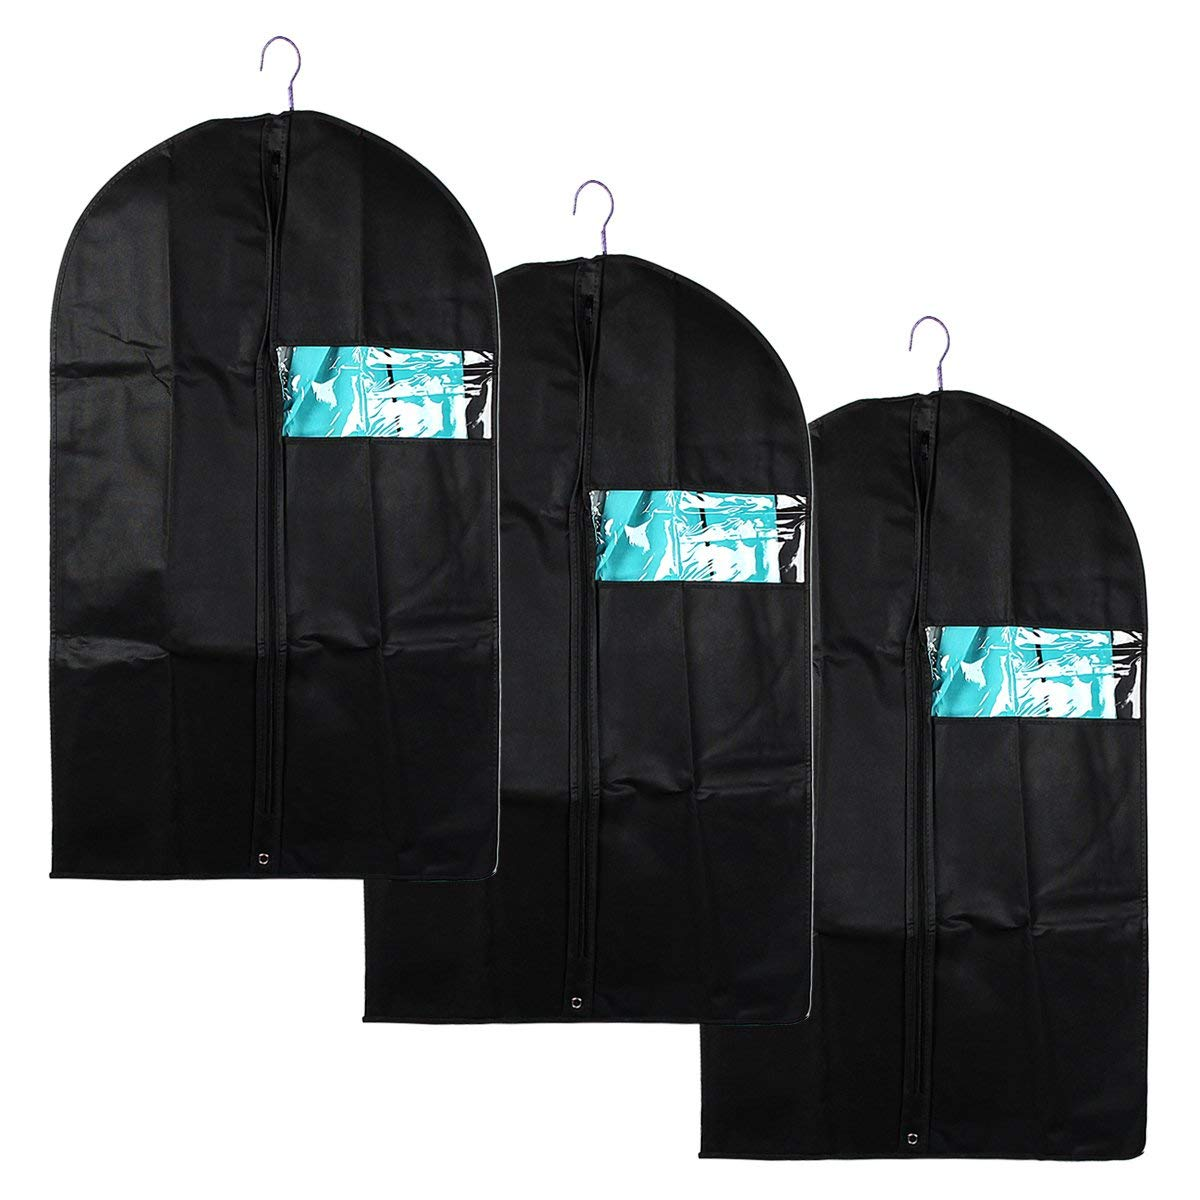 xhorizon TM FL1 Set of 3 Garment Bags (40inches) - Breathable Garment Bag Covers for Suit Carriers,Dresses,Linens,Storage or Travel - Suit Bag with Clear Window (Black)